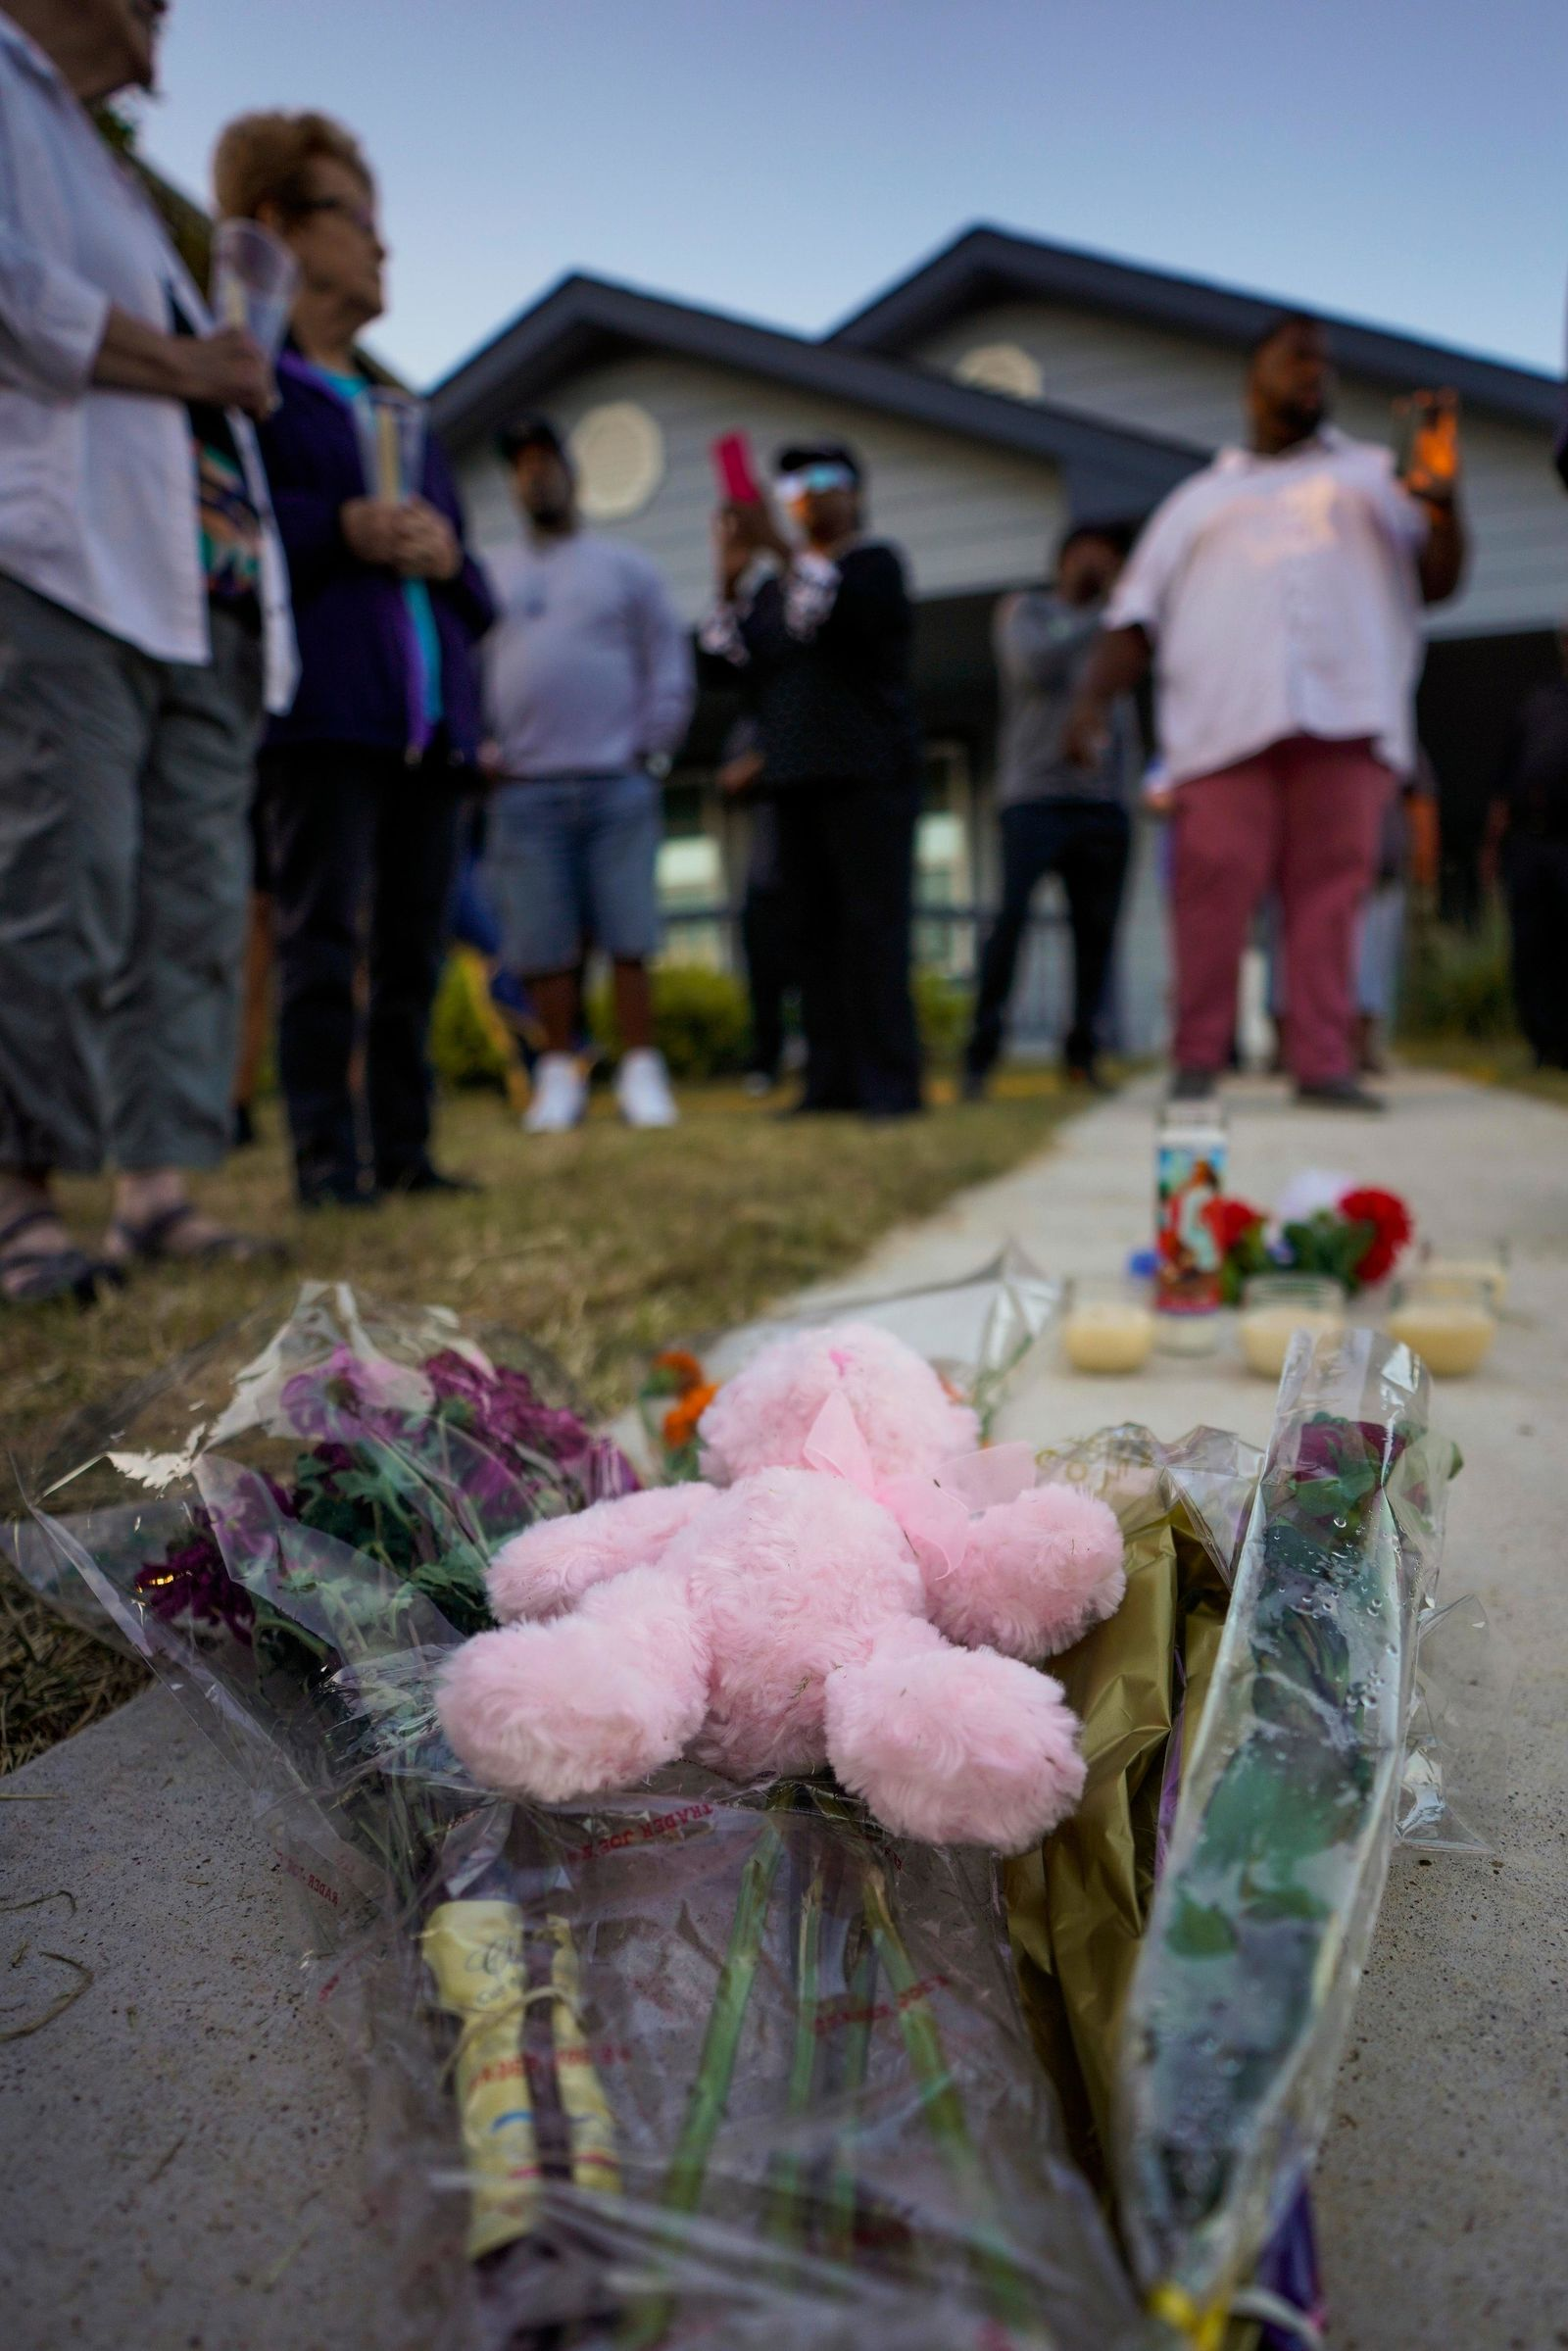 "Protesters left flowers outside the house, in the background, where Atatiana Jefferson was shot and killed, durin a community vigil for Atatiana Jefferson on Sunday, Oct. 13, 2019, in Fort Worth, Texas. A white police officer who killed the black woman inside her Texas home while responding to a neighbor's call about an open front door ""didn't have time to perceive a threat"" before he opened fire, an attorney for Jefferson's family said. (Smiley N. Pool/The Dallas Morning News via AP)"